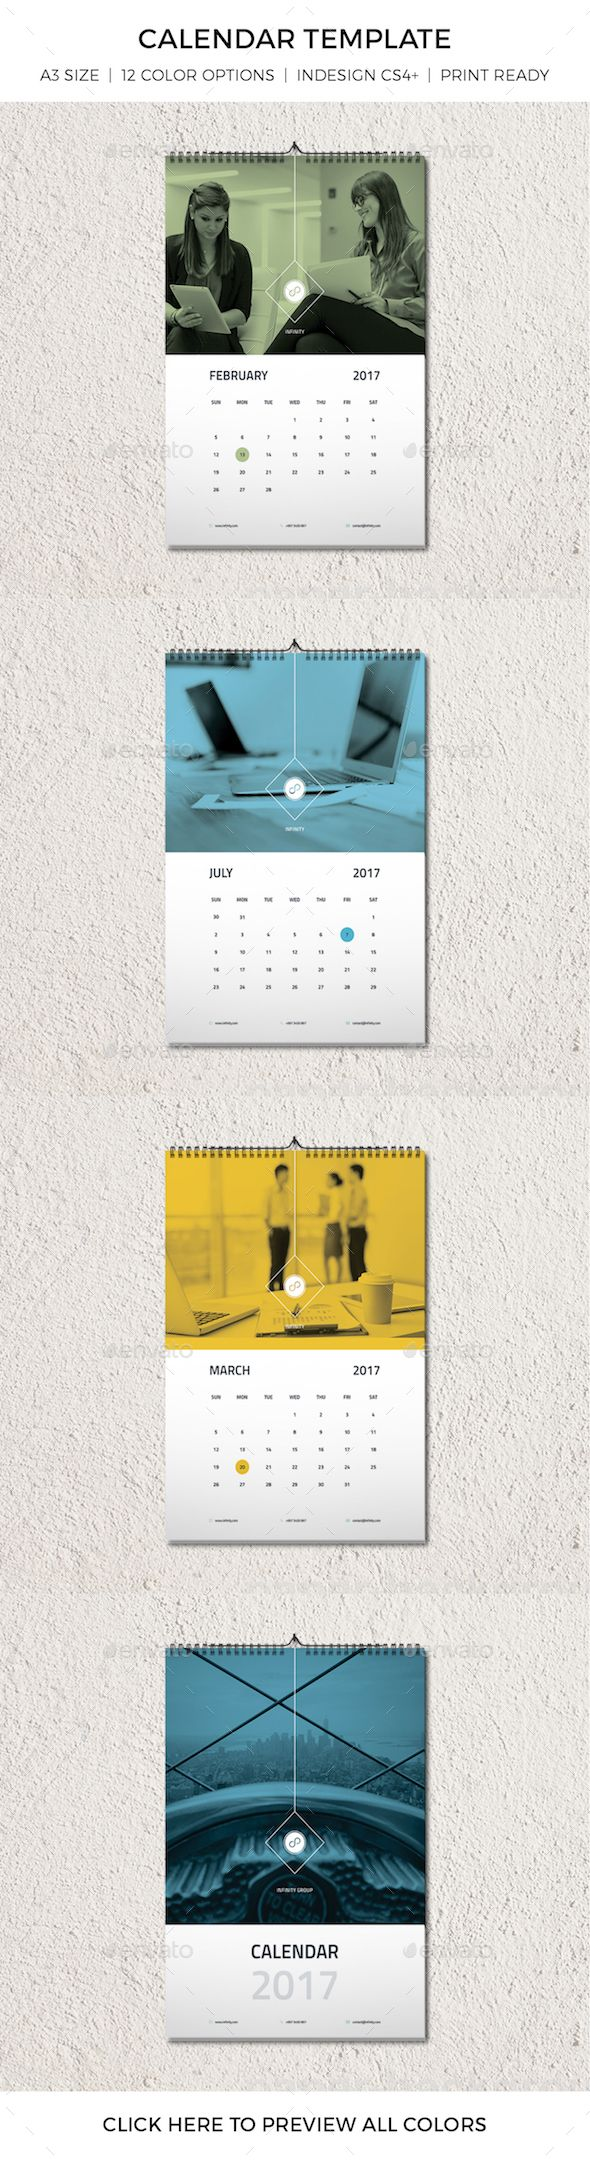 69 best Calendar Template images on Pinterest | Calendar templates ...